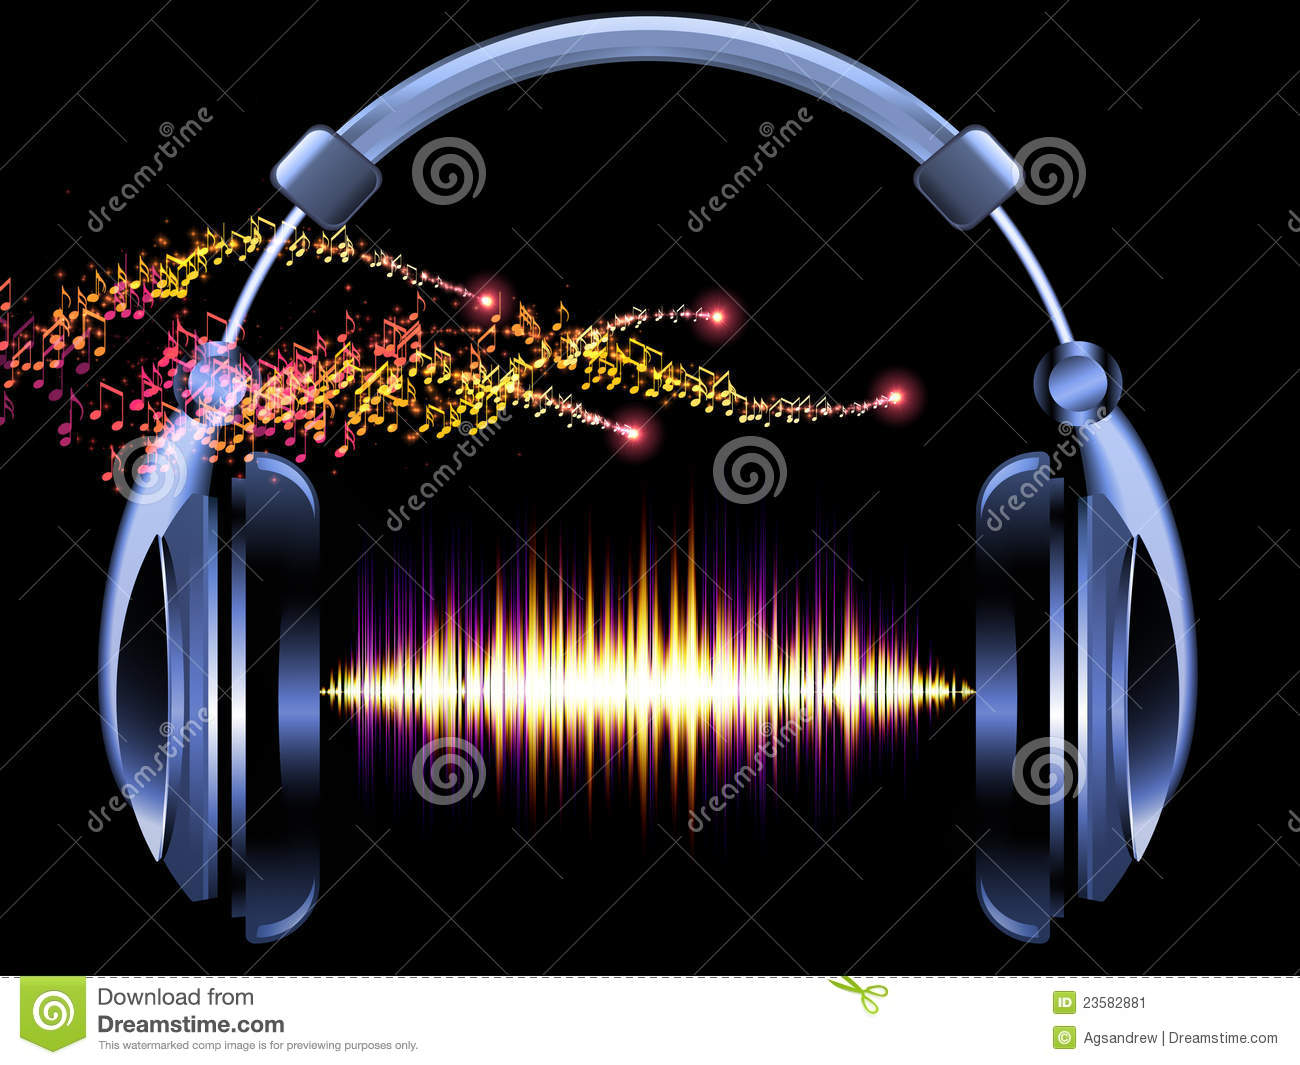 Headphones Music Notes: Headphones Of Music Stock Image. Image Of Sound